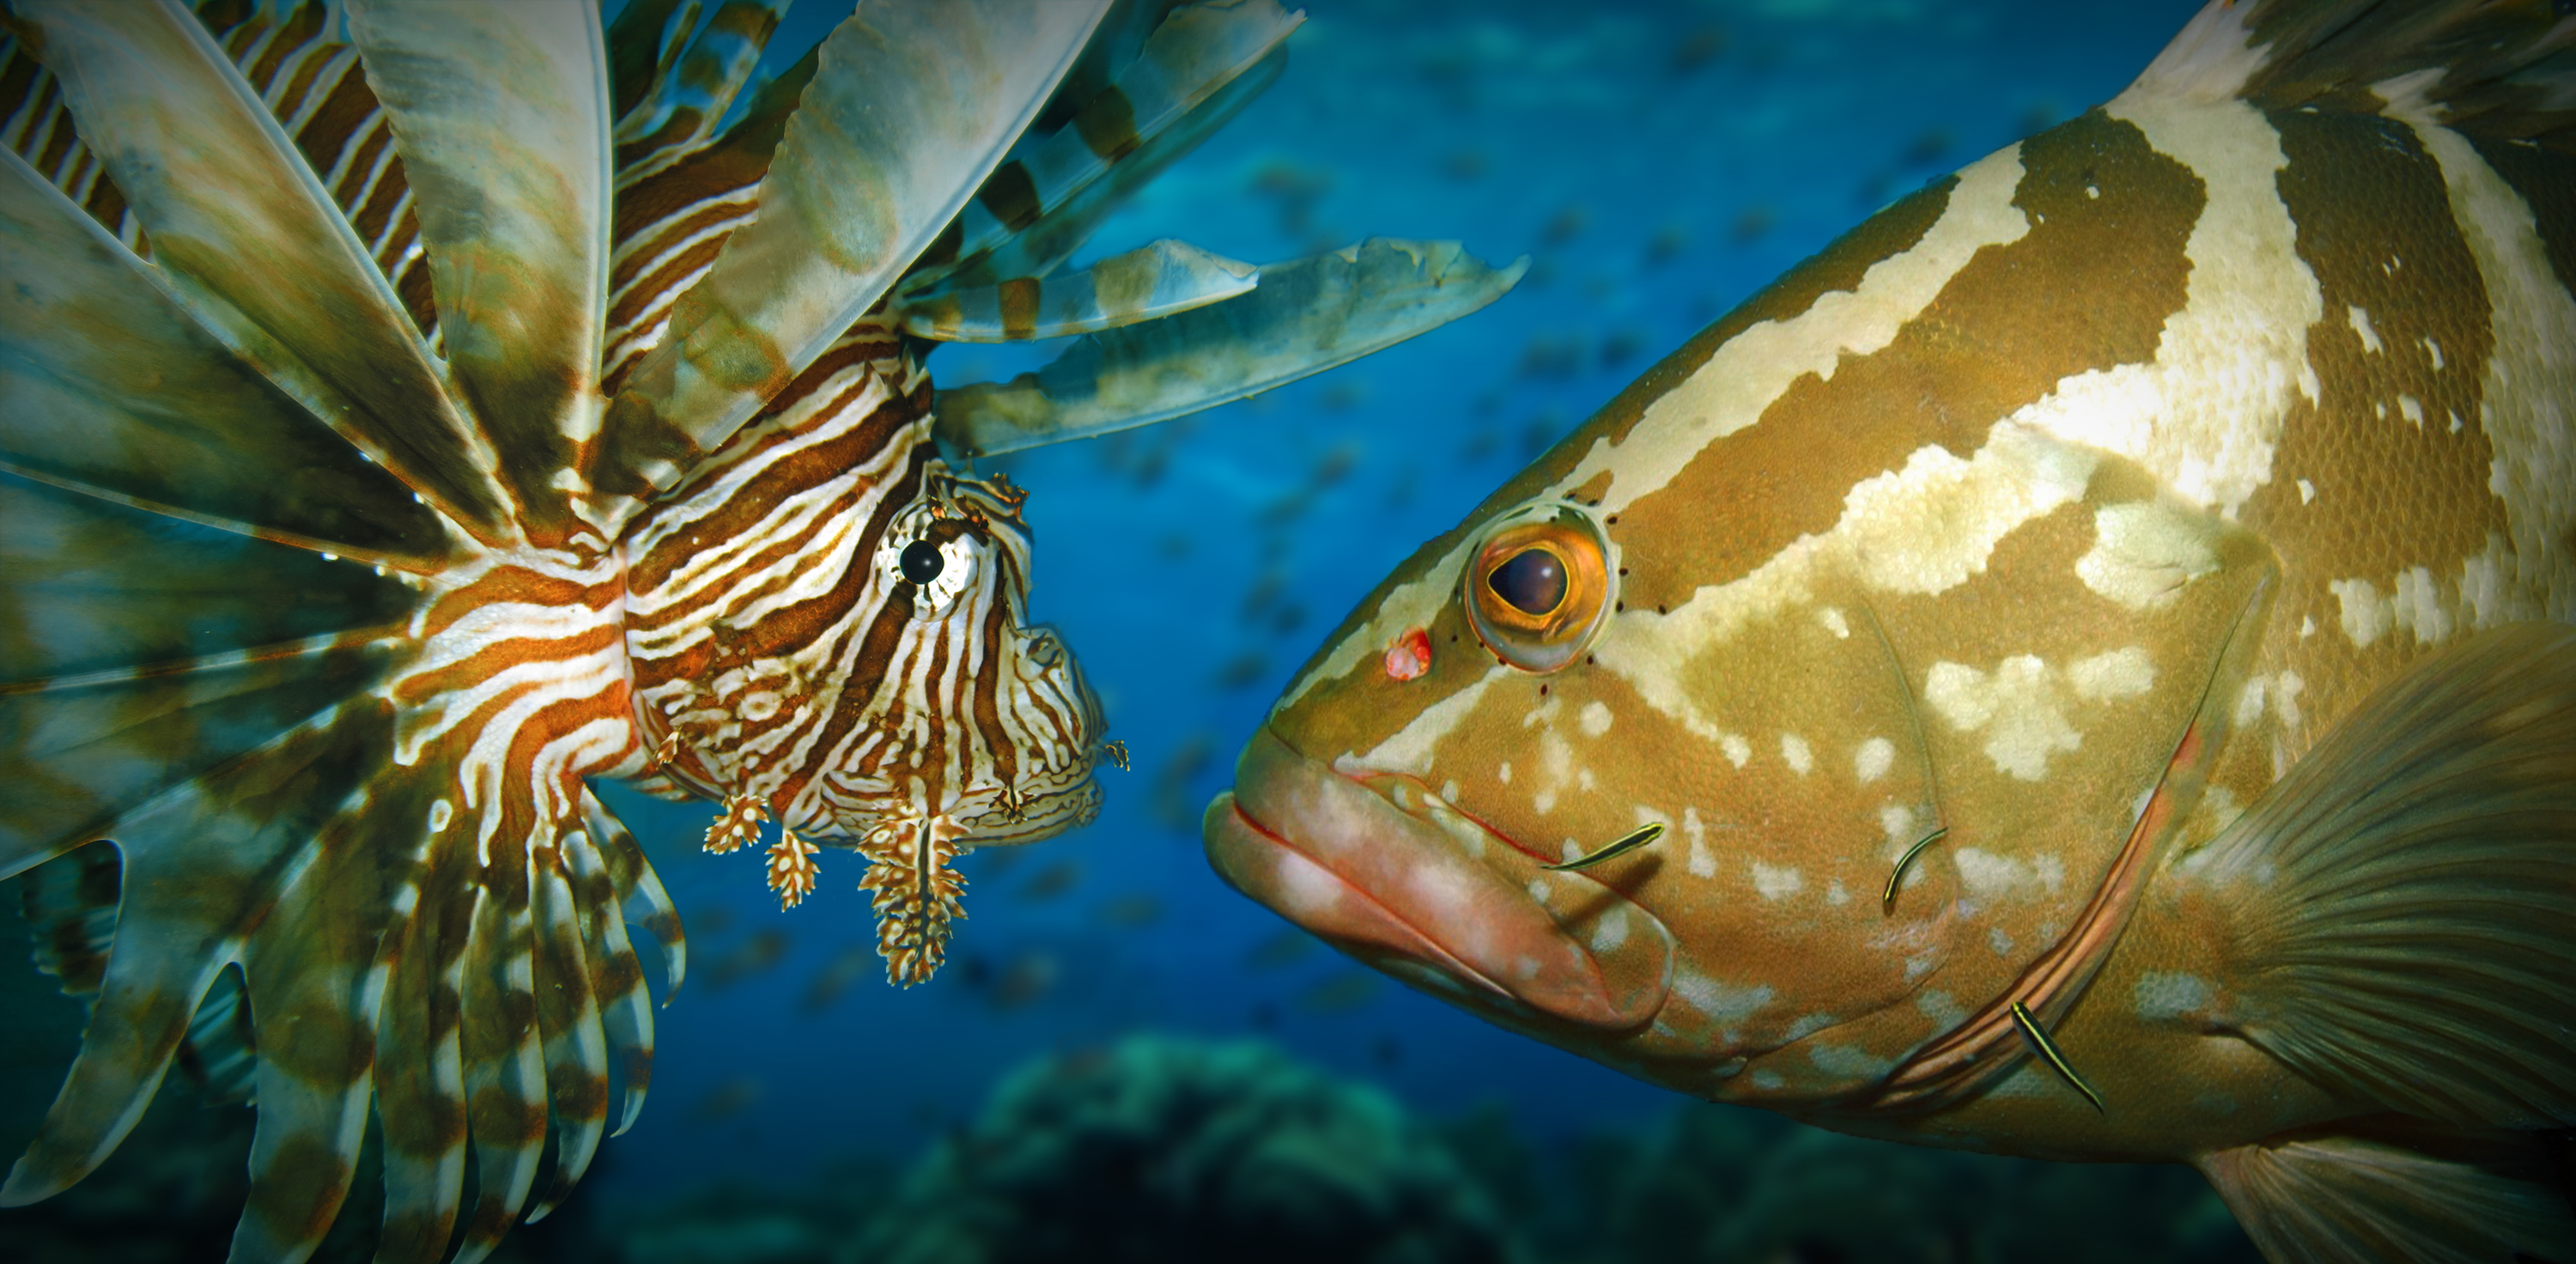 Lionfish Eating Prey | www.imgkid.com - The Image Kid Has It!